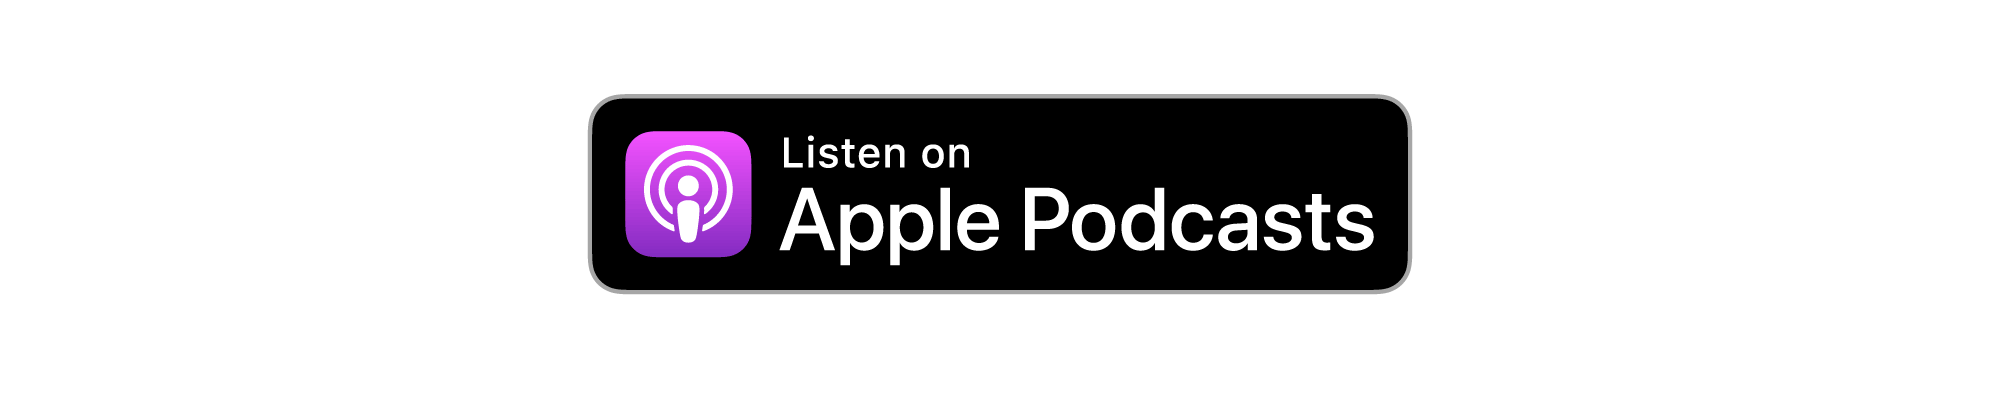 US_UK_Apple_Podcasts_Listen_Badge_RGB-2000x400.png